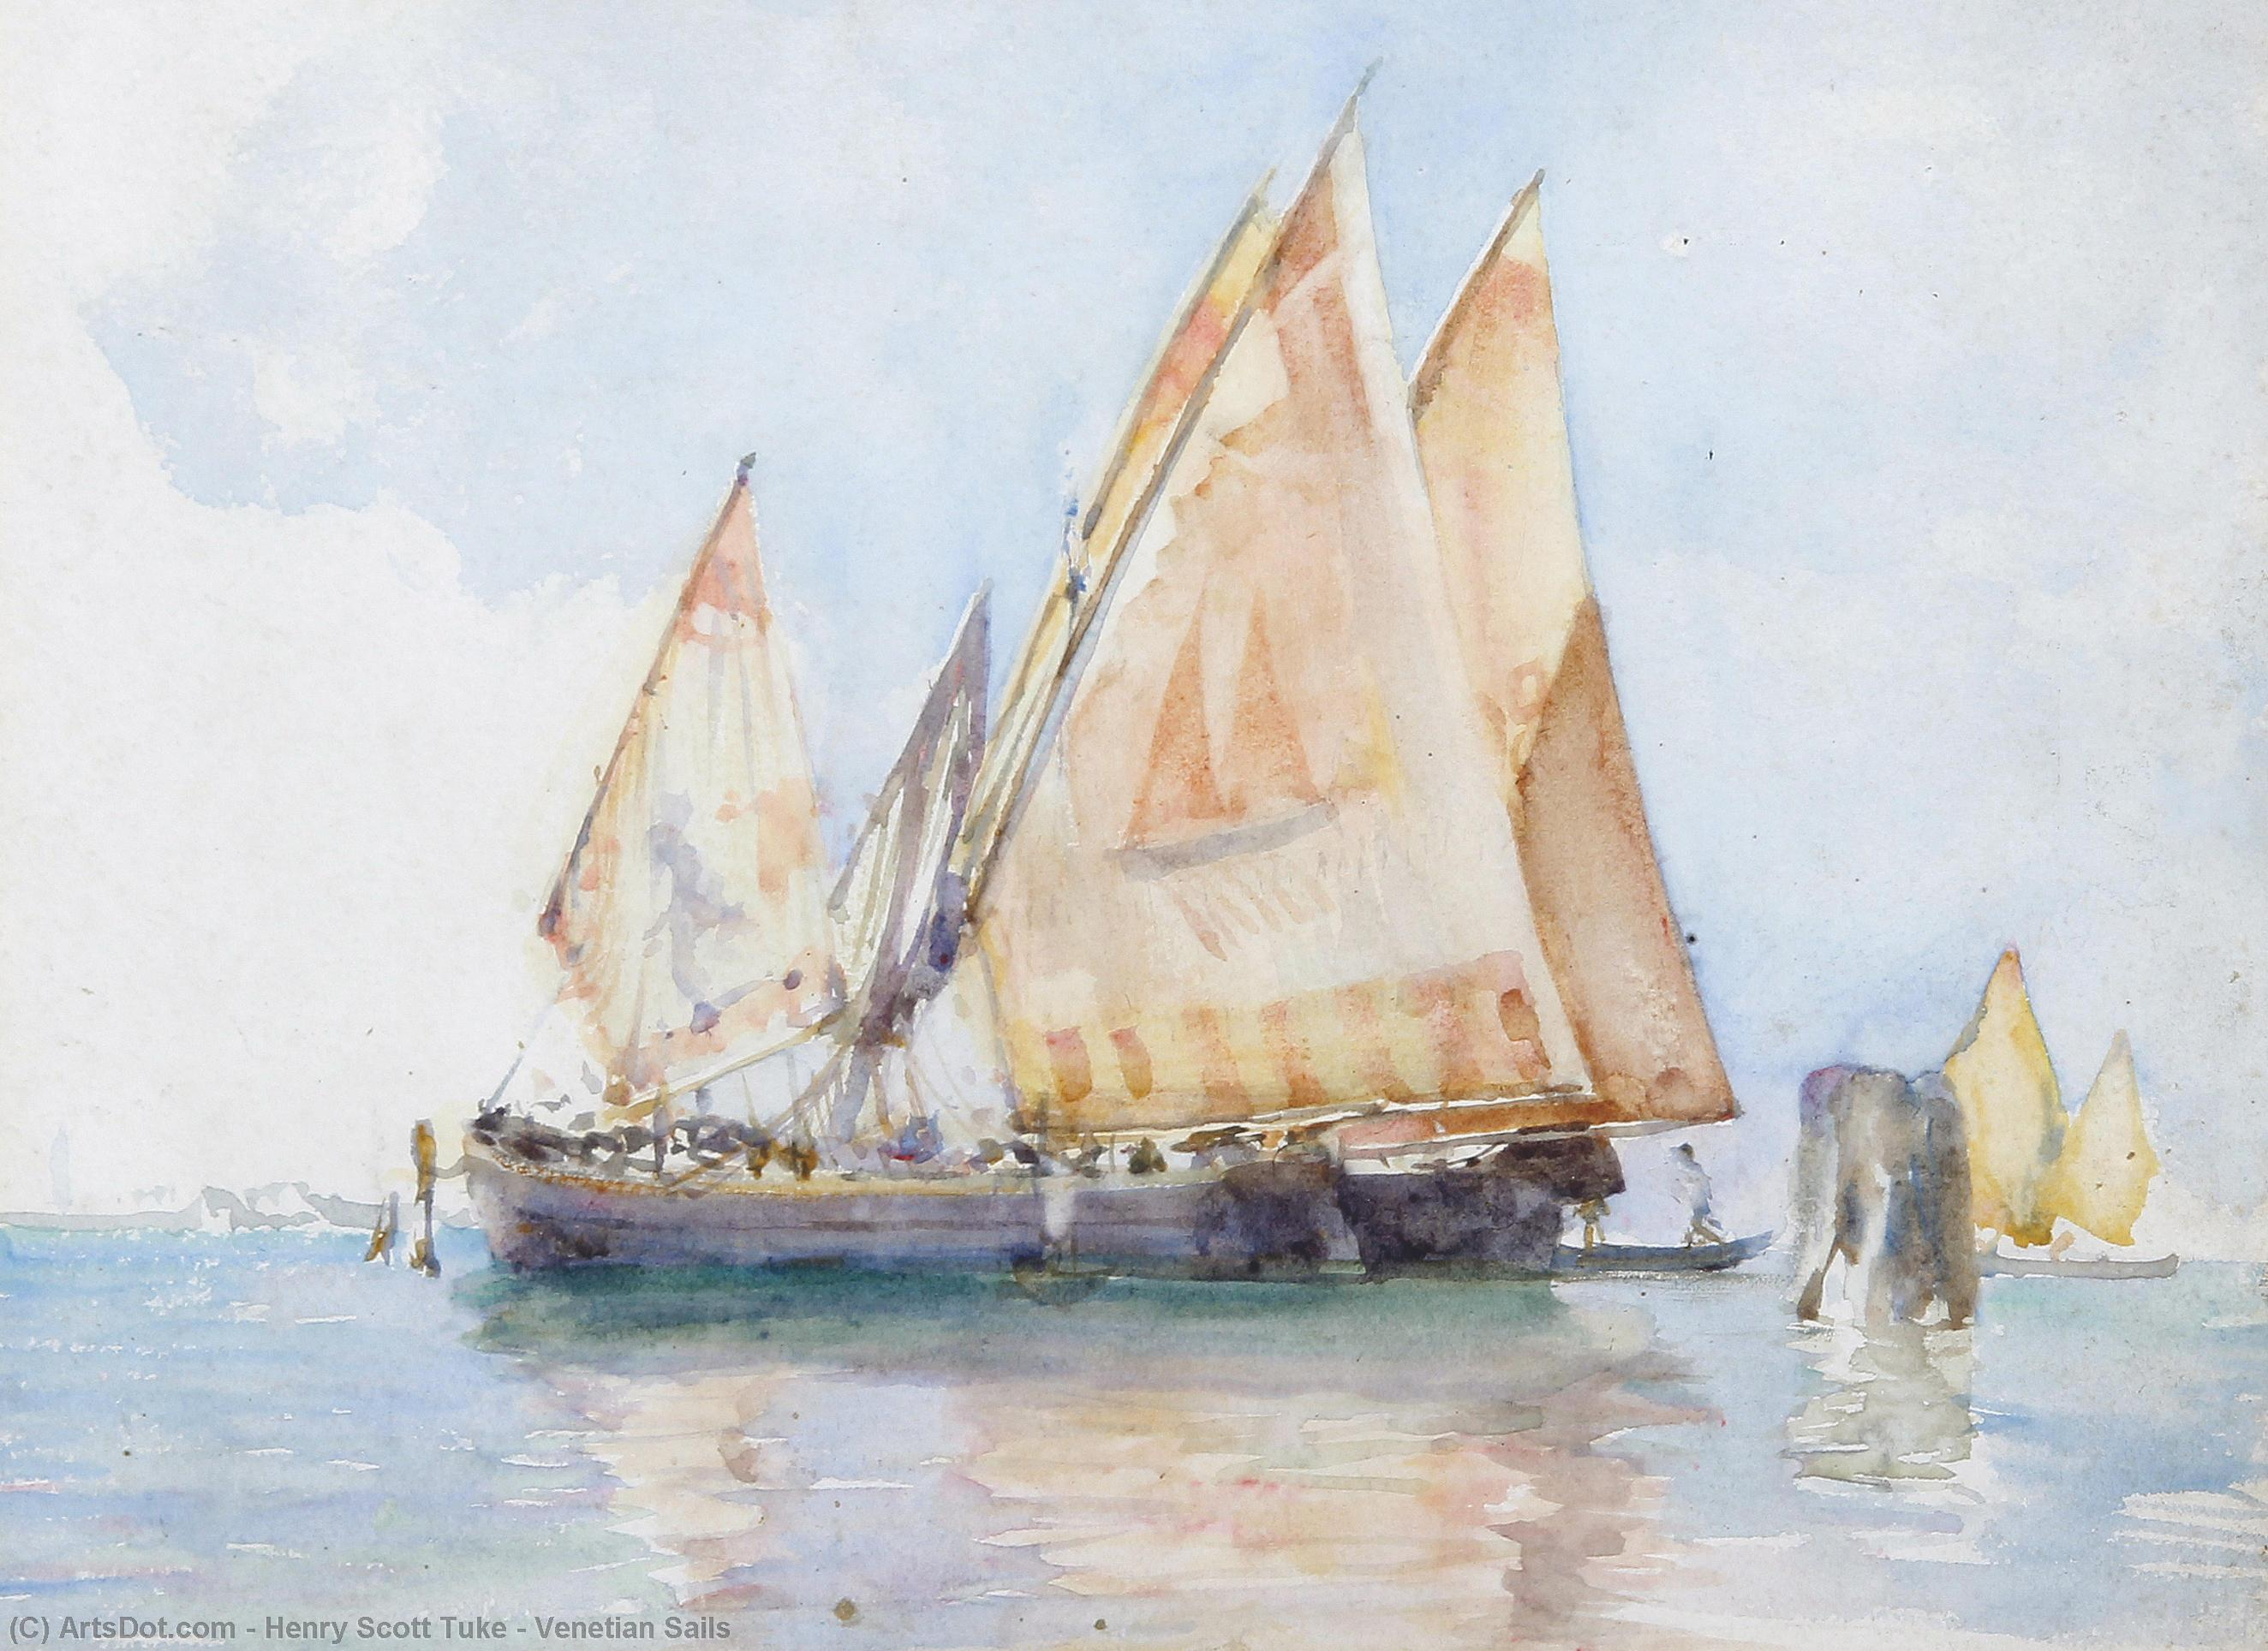 Venetian Sails by Henry Scott Tuke (1858-1929, United Kingdom) | Reproductions Henry Scott Tuke | ArtsDot.com